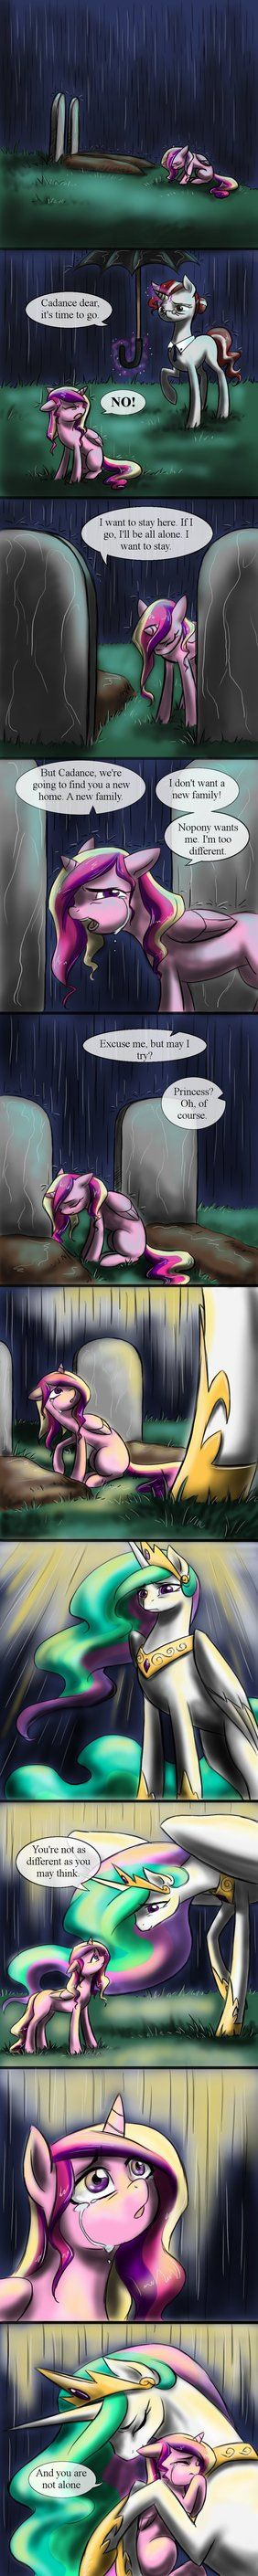 :'(  I started crying when I saw this, I still amSadness Mlp, Mlp Cadence, Sweets, Mlp Cute, Mlp Eye, Mlp Sadness, Start Cry, Ponies Freak, Cartoons